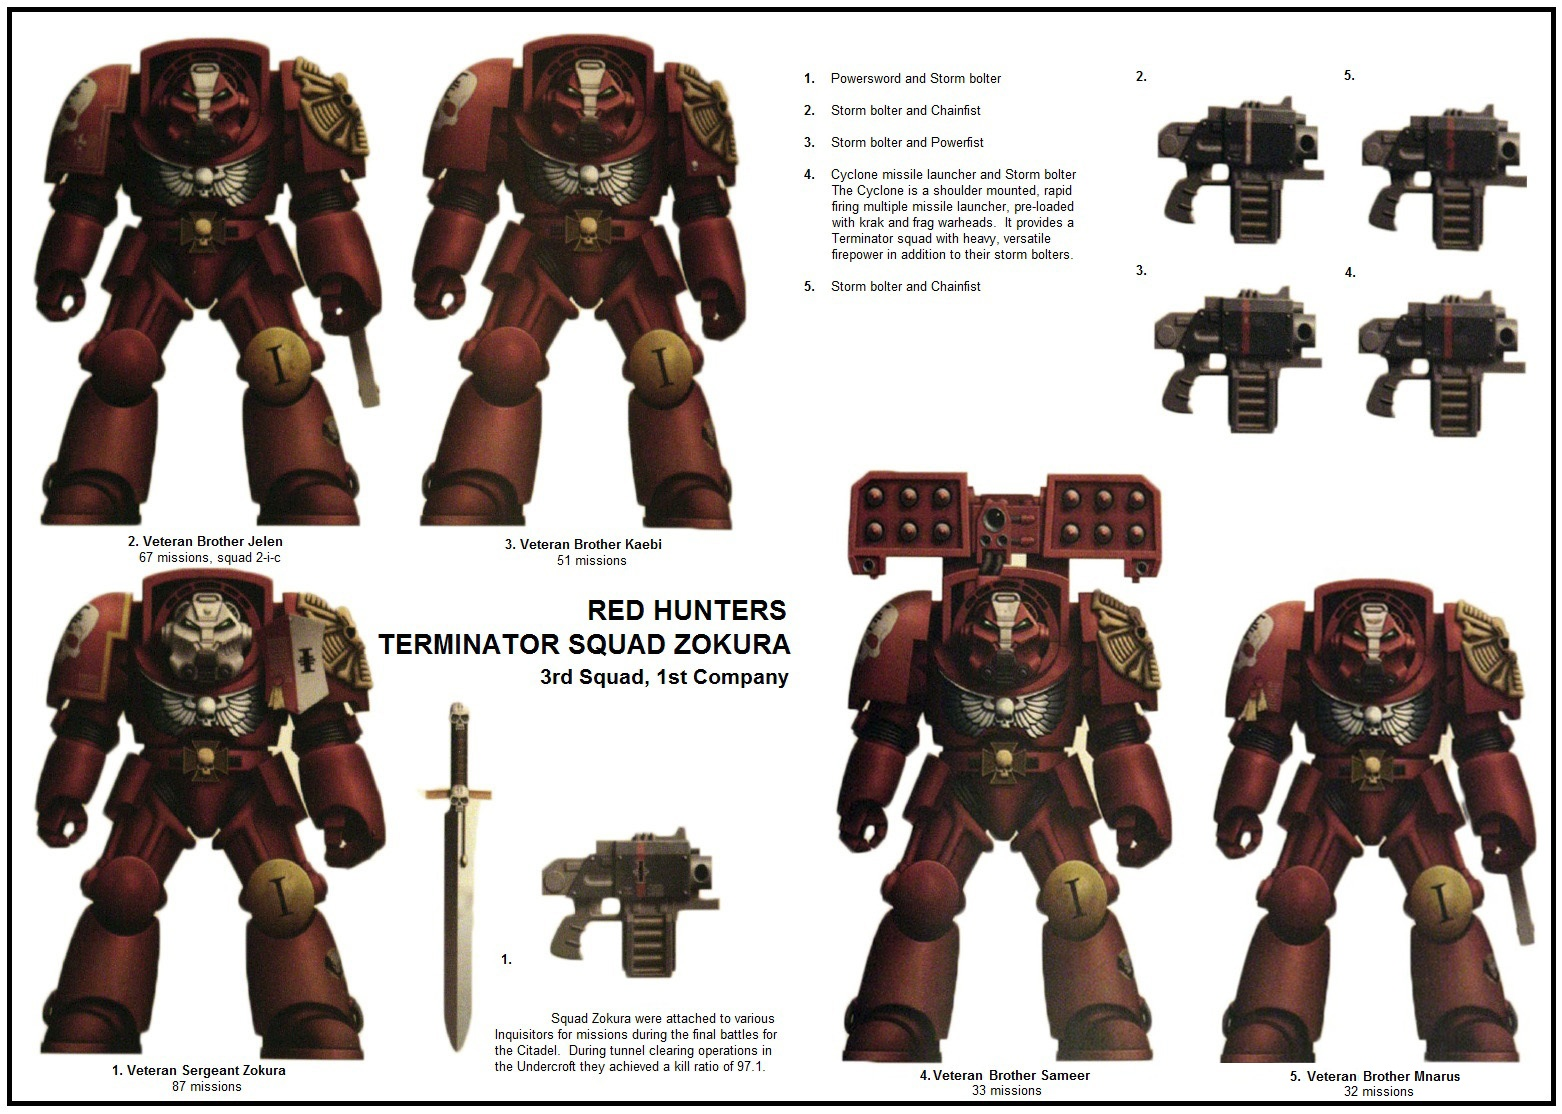 dark heresy space marine rules for dating